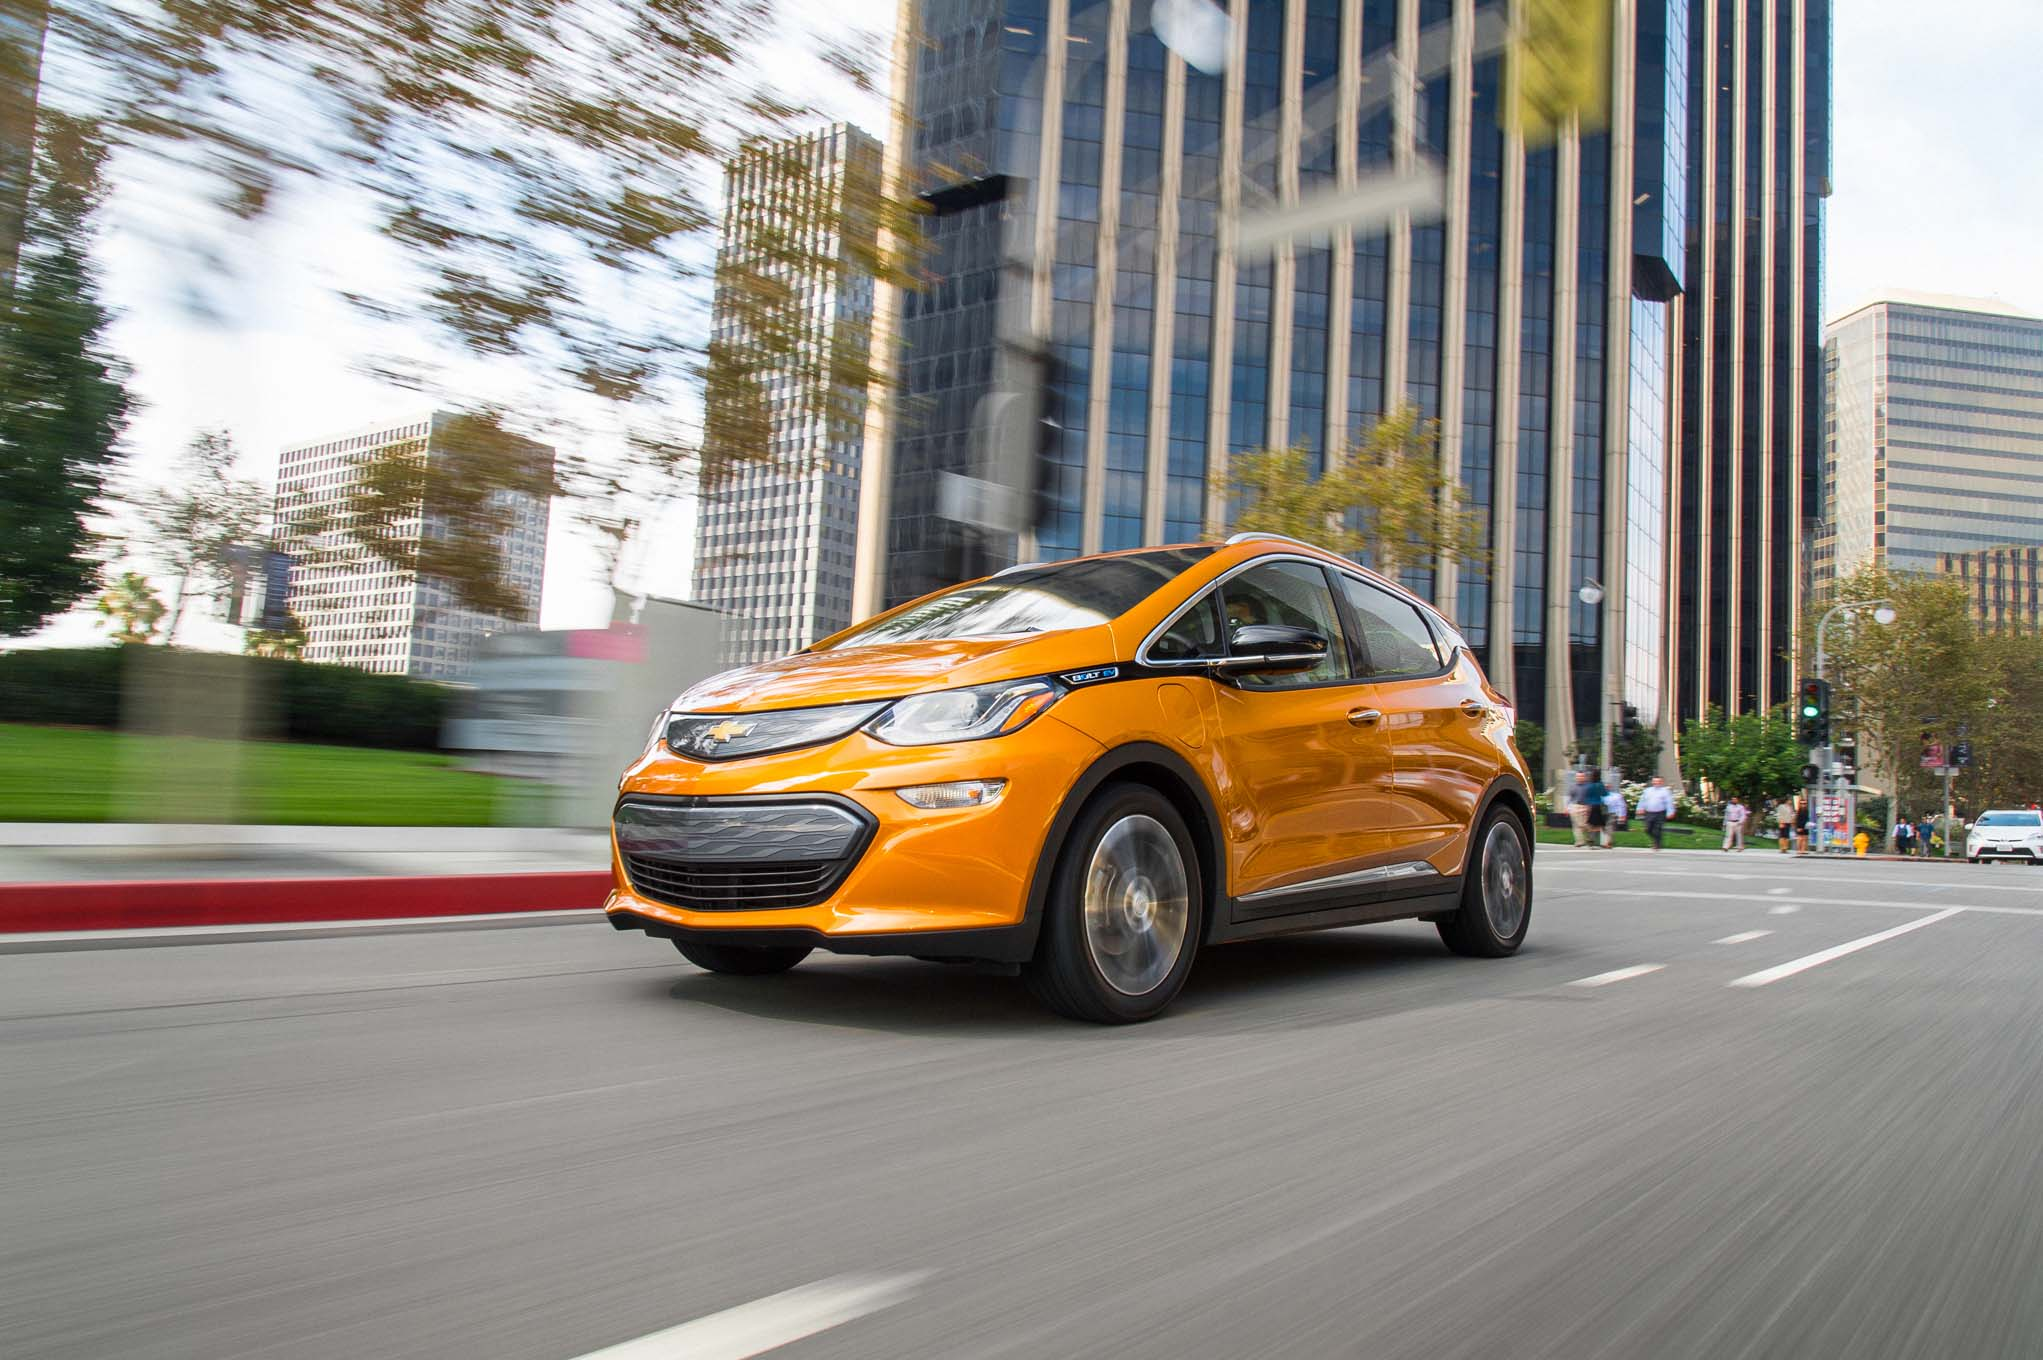 2017 Chevrolet Bolt EV Front Three Quarter In Motion